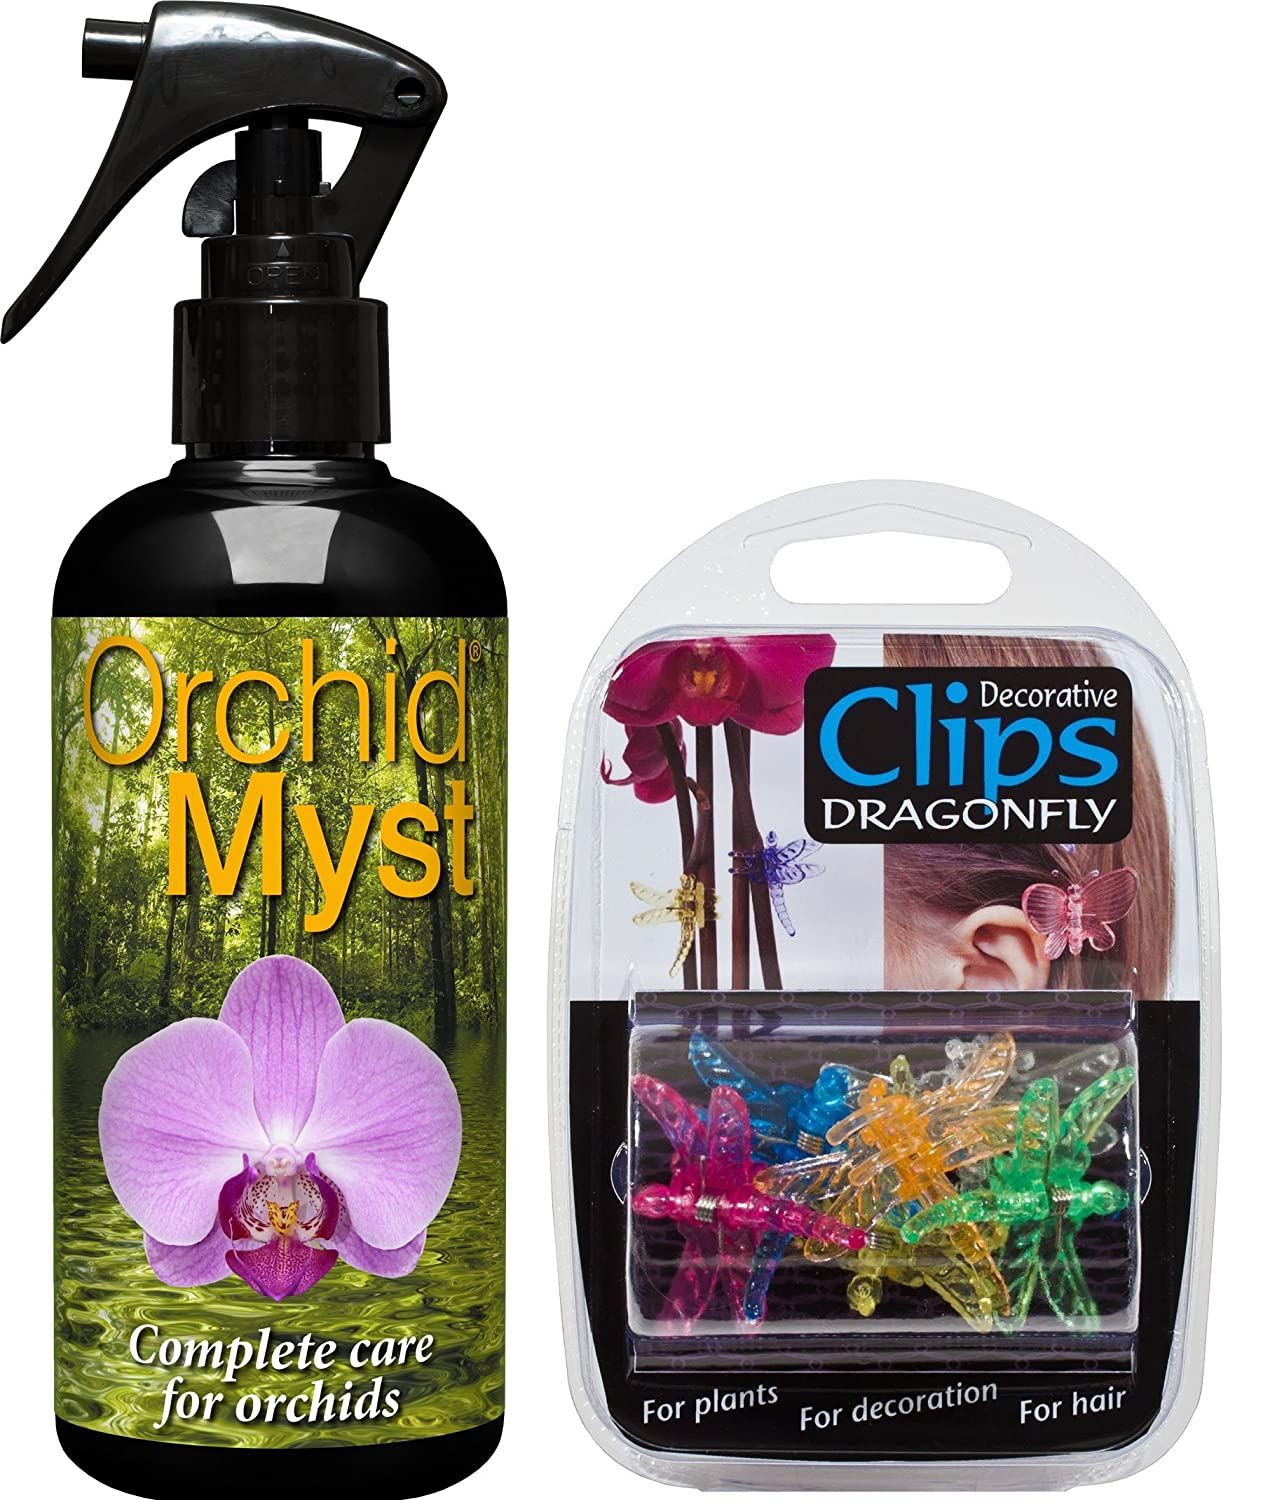 Orchid Myst - Complete Care for Orchids - 300ml and x6 Plastic Dragonfly Clips for Decorating Orchid Plant by Growth Technology …